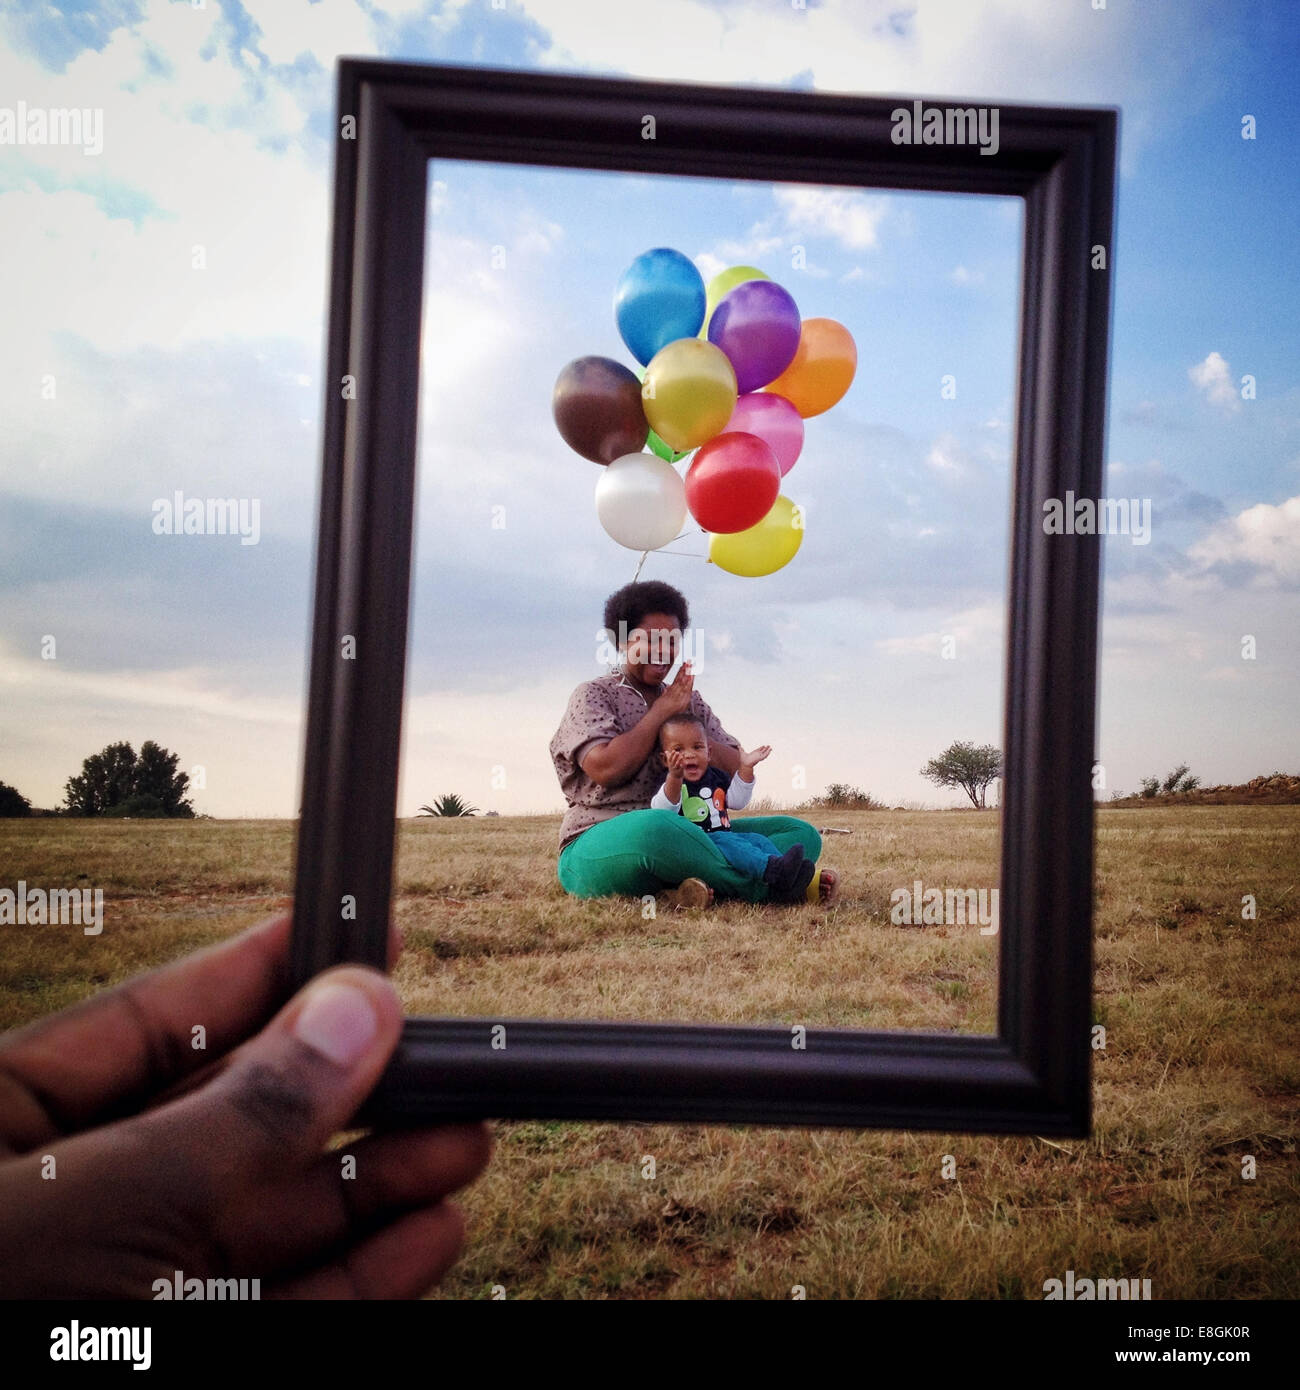 South Africa, Gauteng, Johannesburg, Roodepoort, Mother and son (12-17 months) sitting in meadow with bunch of colorful - Stock Image